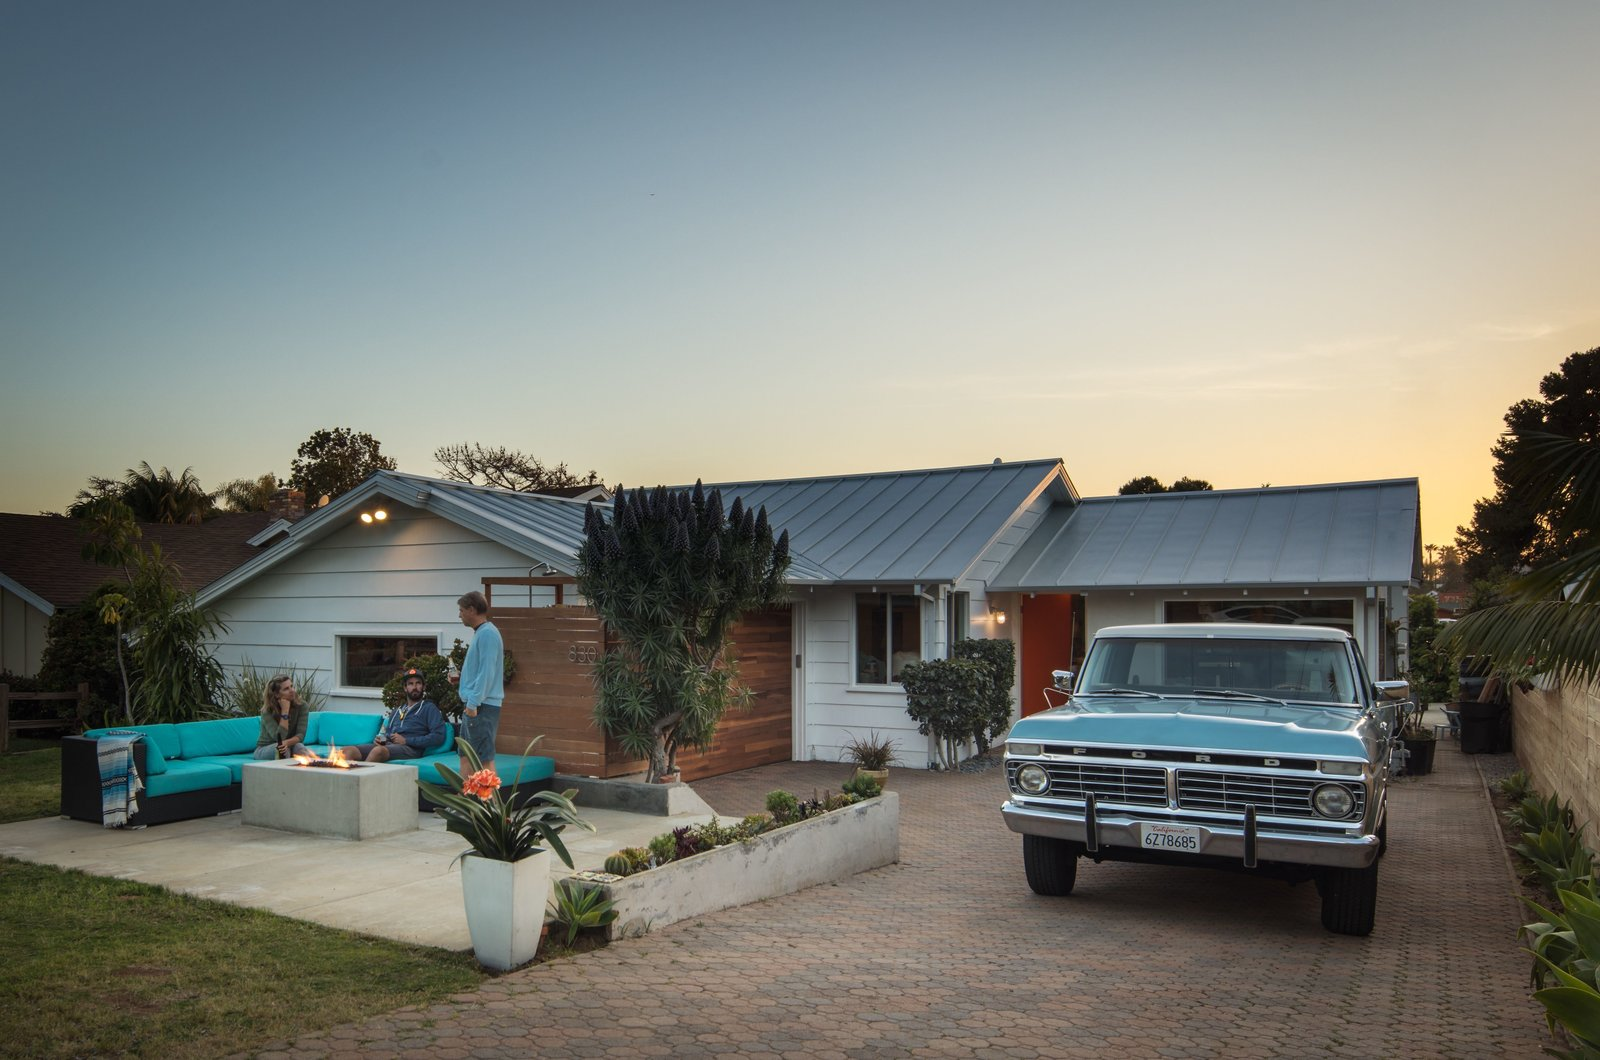 1973 Ford F250 + front fire pit   The Beach Lab by Surfside Projects